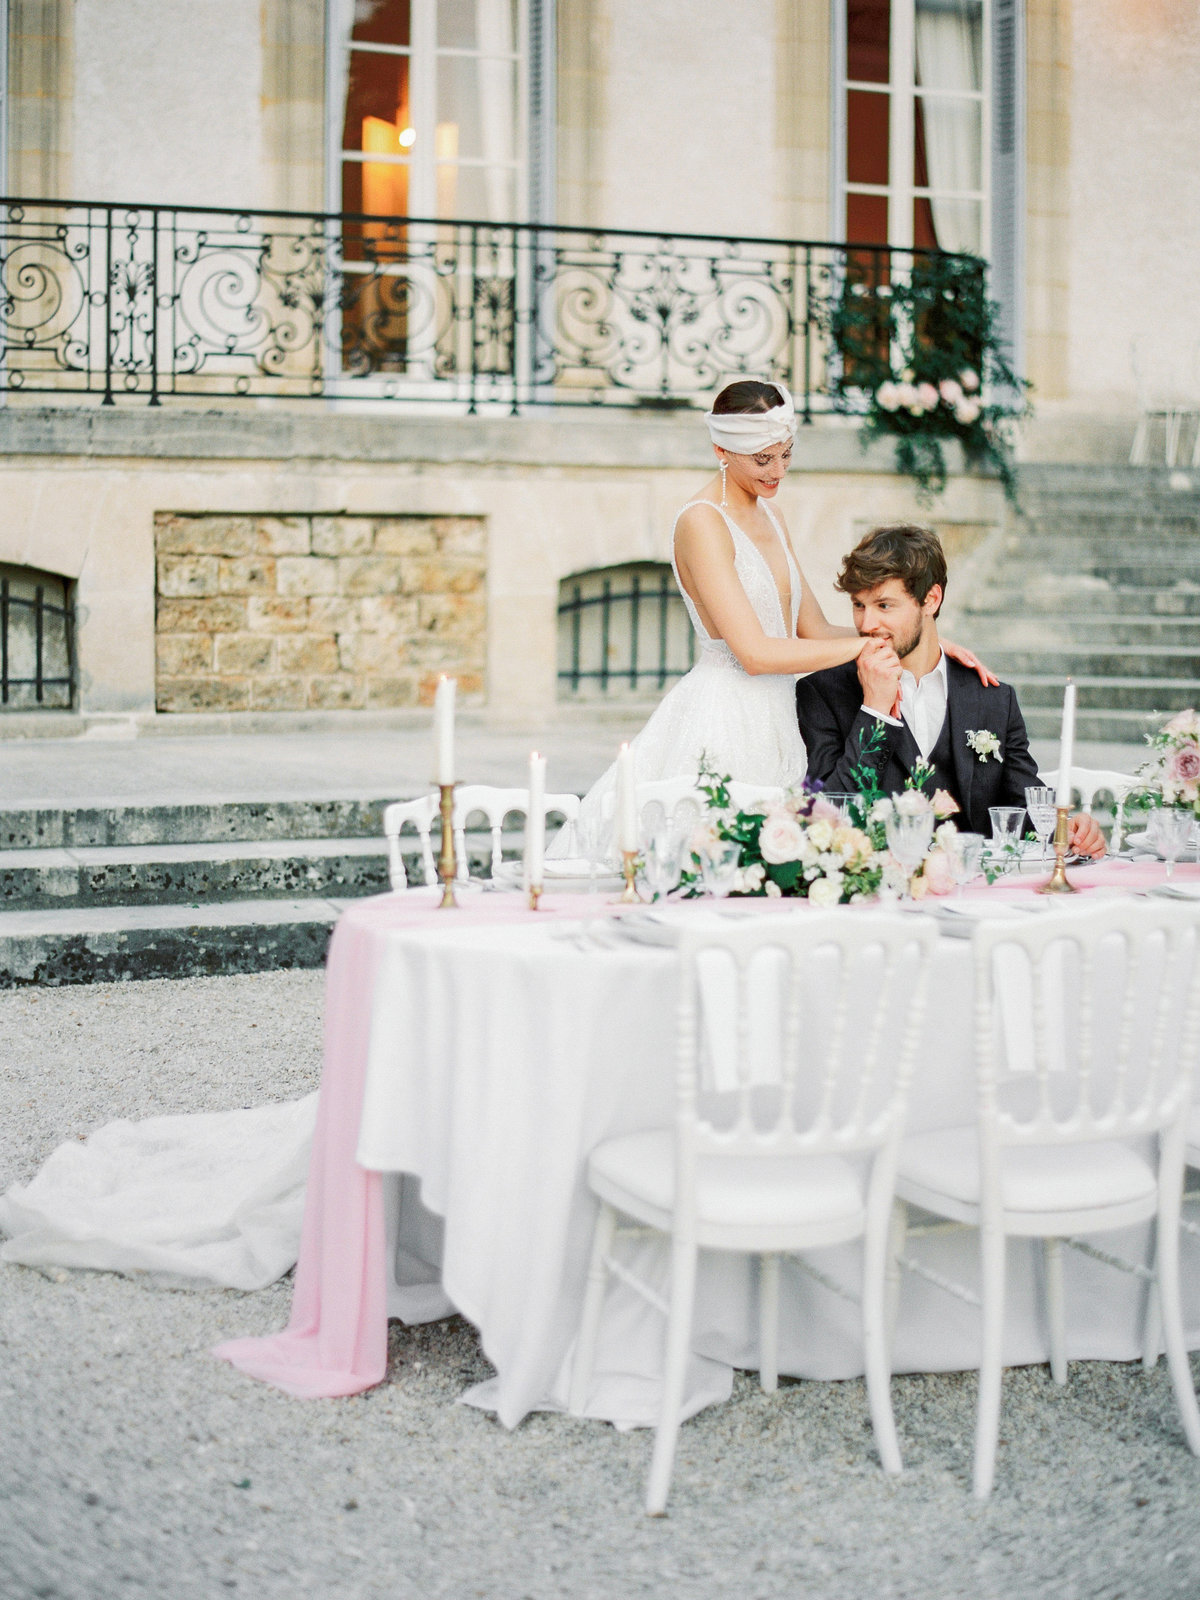 Luxurious french chateau wedding amelia soegijono0046